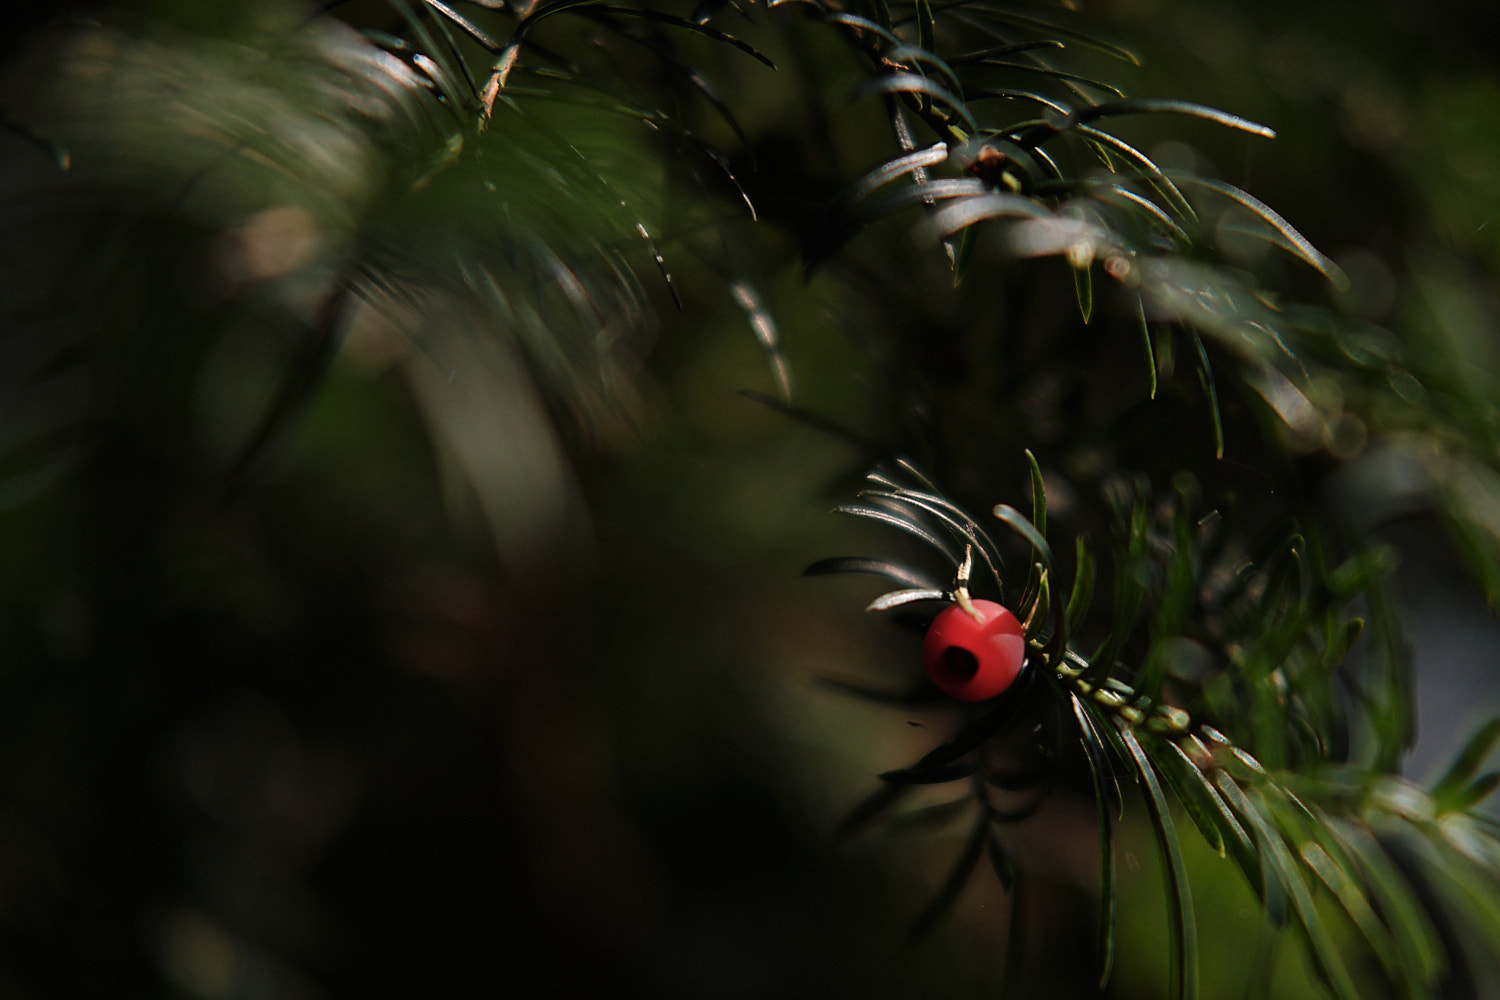 close up of a yew's berry